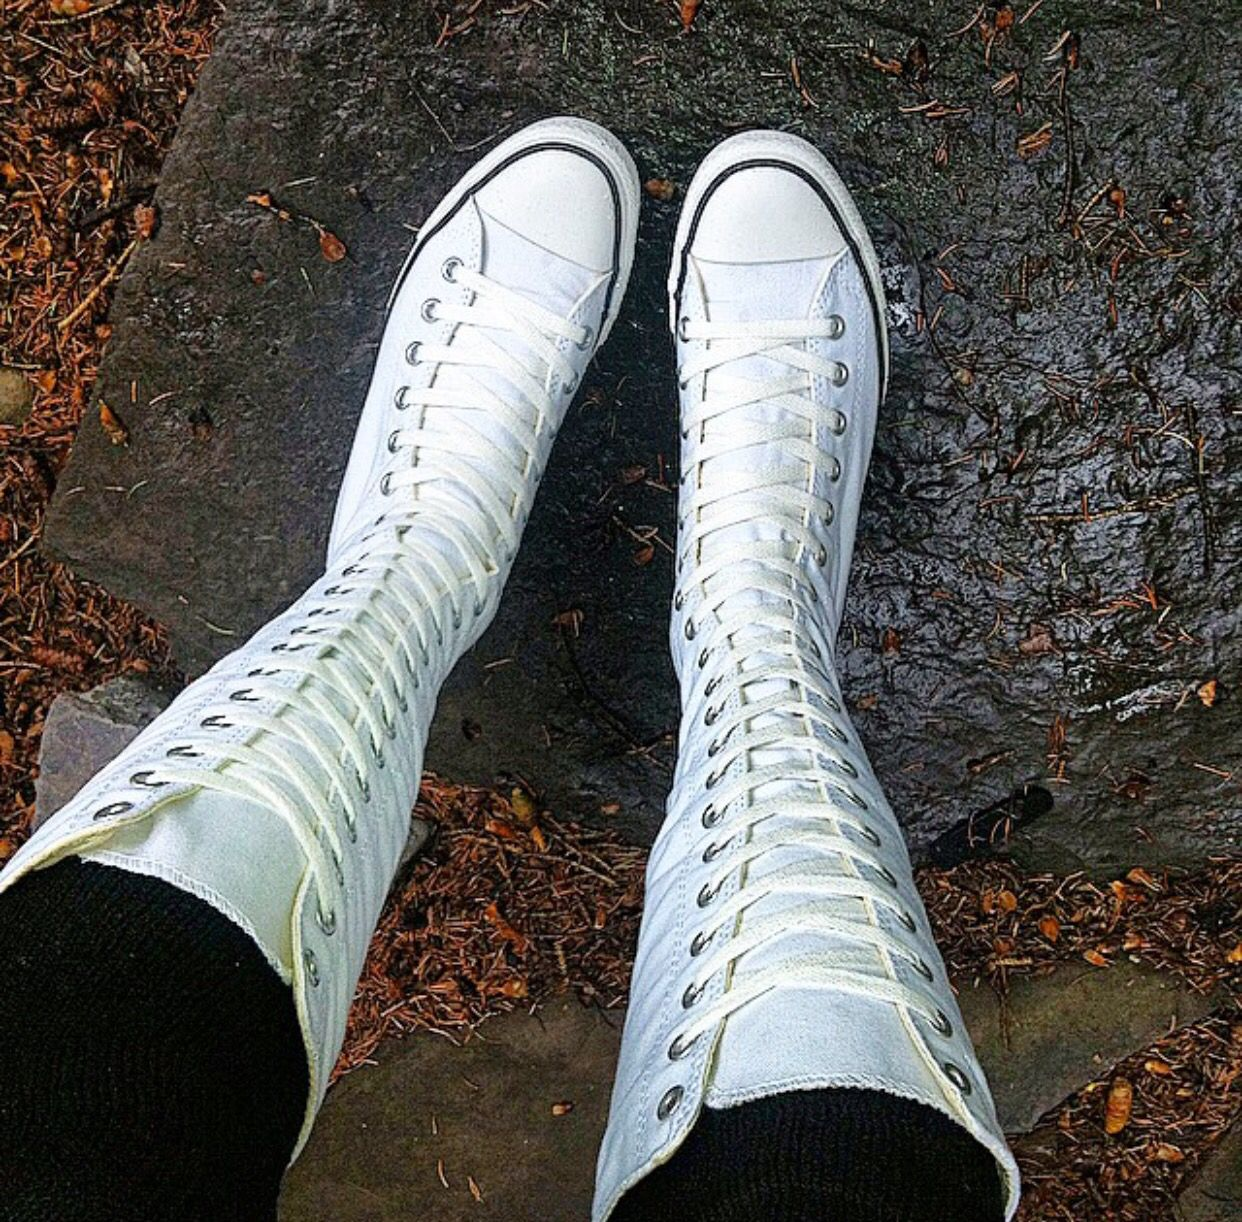 68ac22d69d34 Day 1 of my journey to New Orleans I was wearing my new white knee high